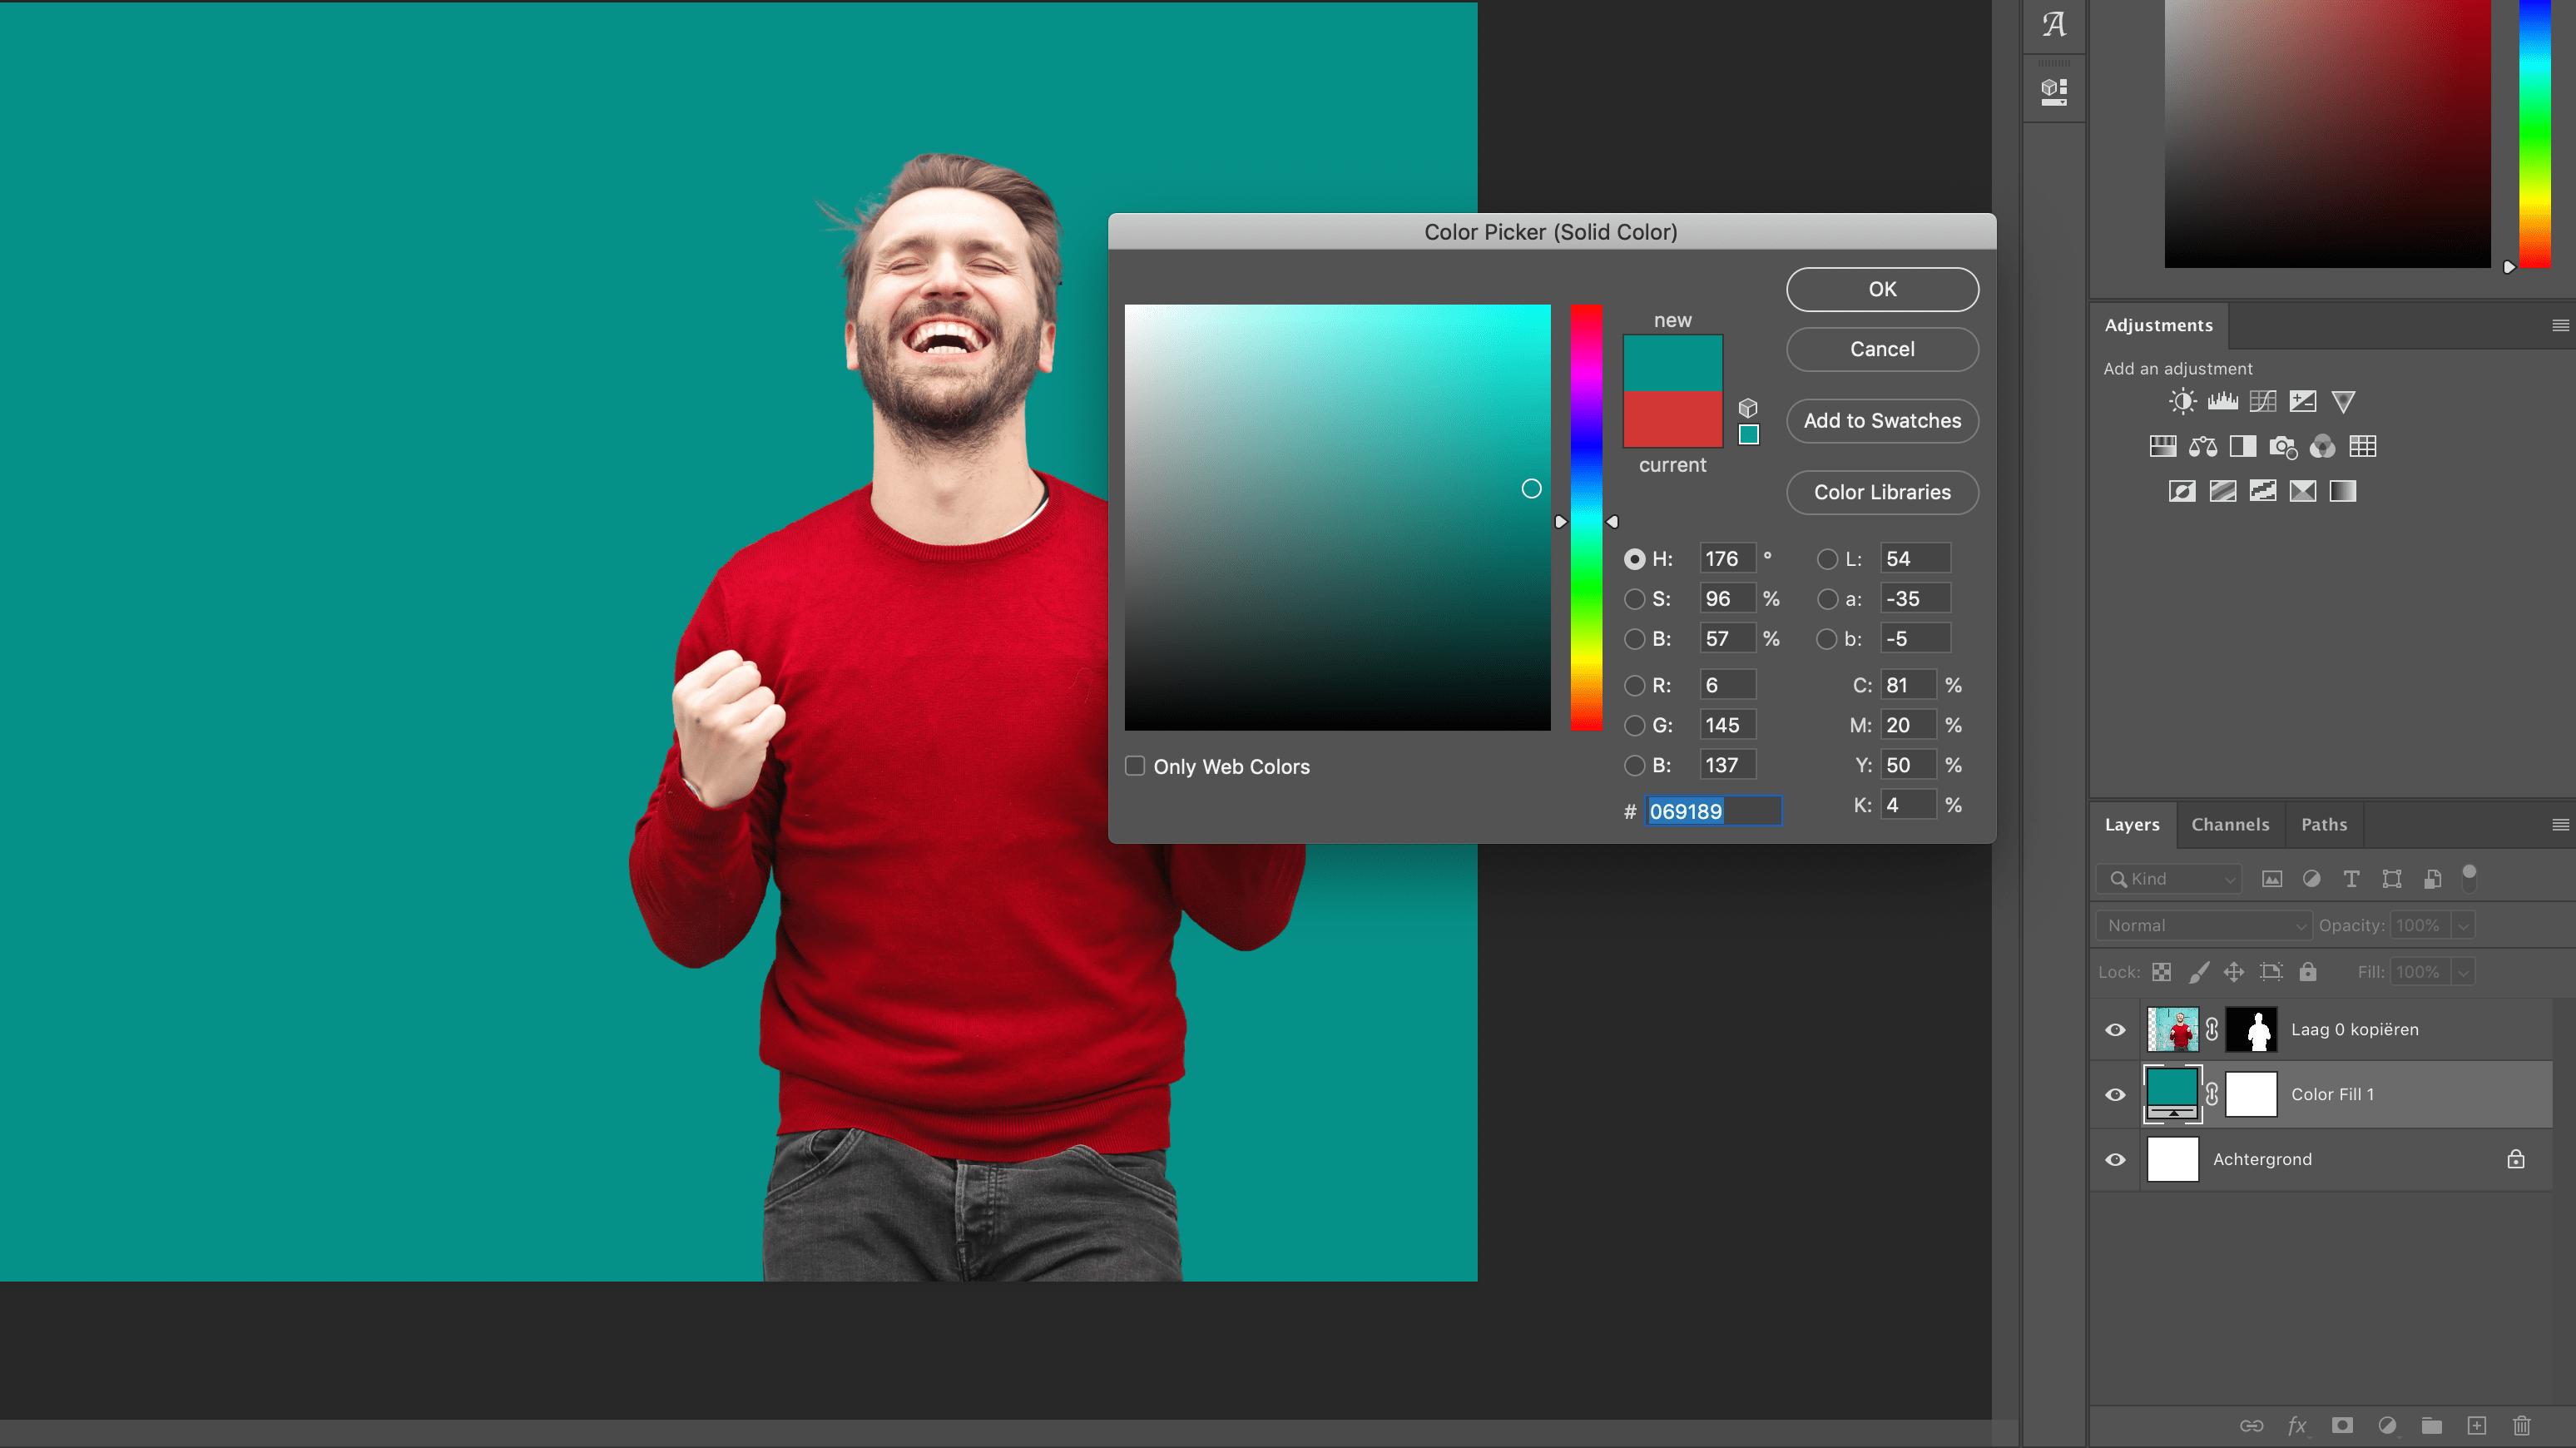 Kies een kleur in de Color Picker